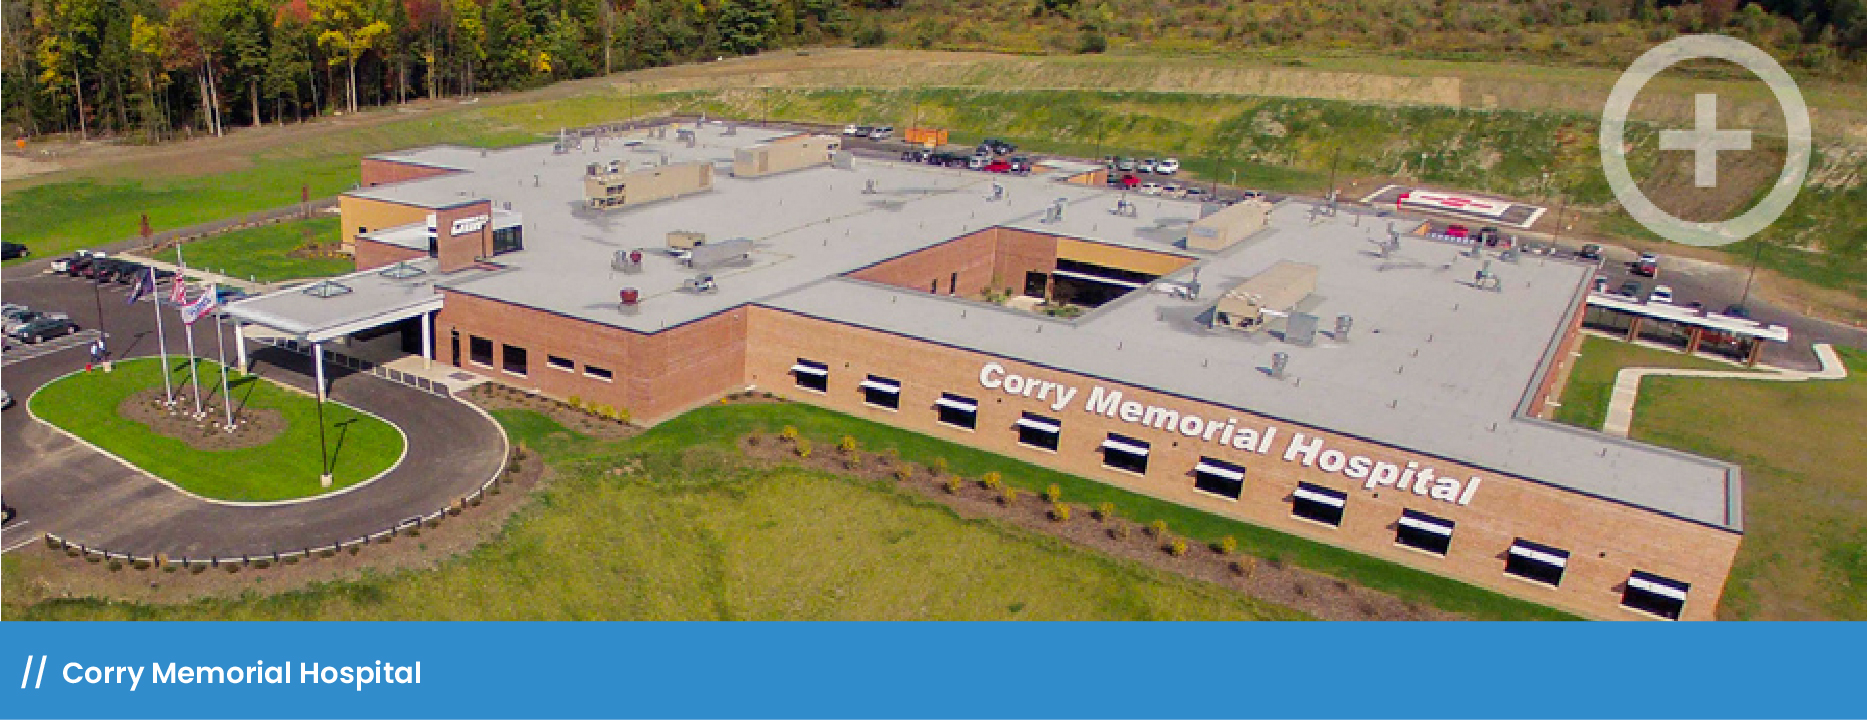 Yanik-Watermark_Corry Memorial Hospital-